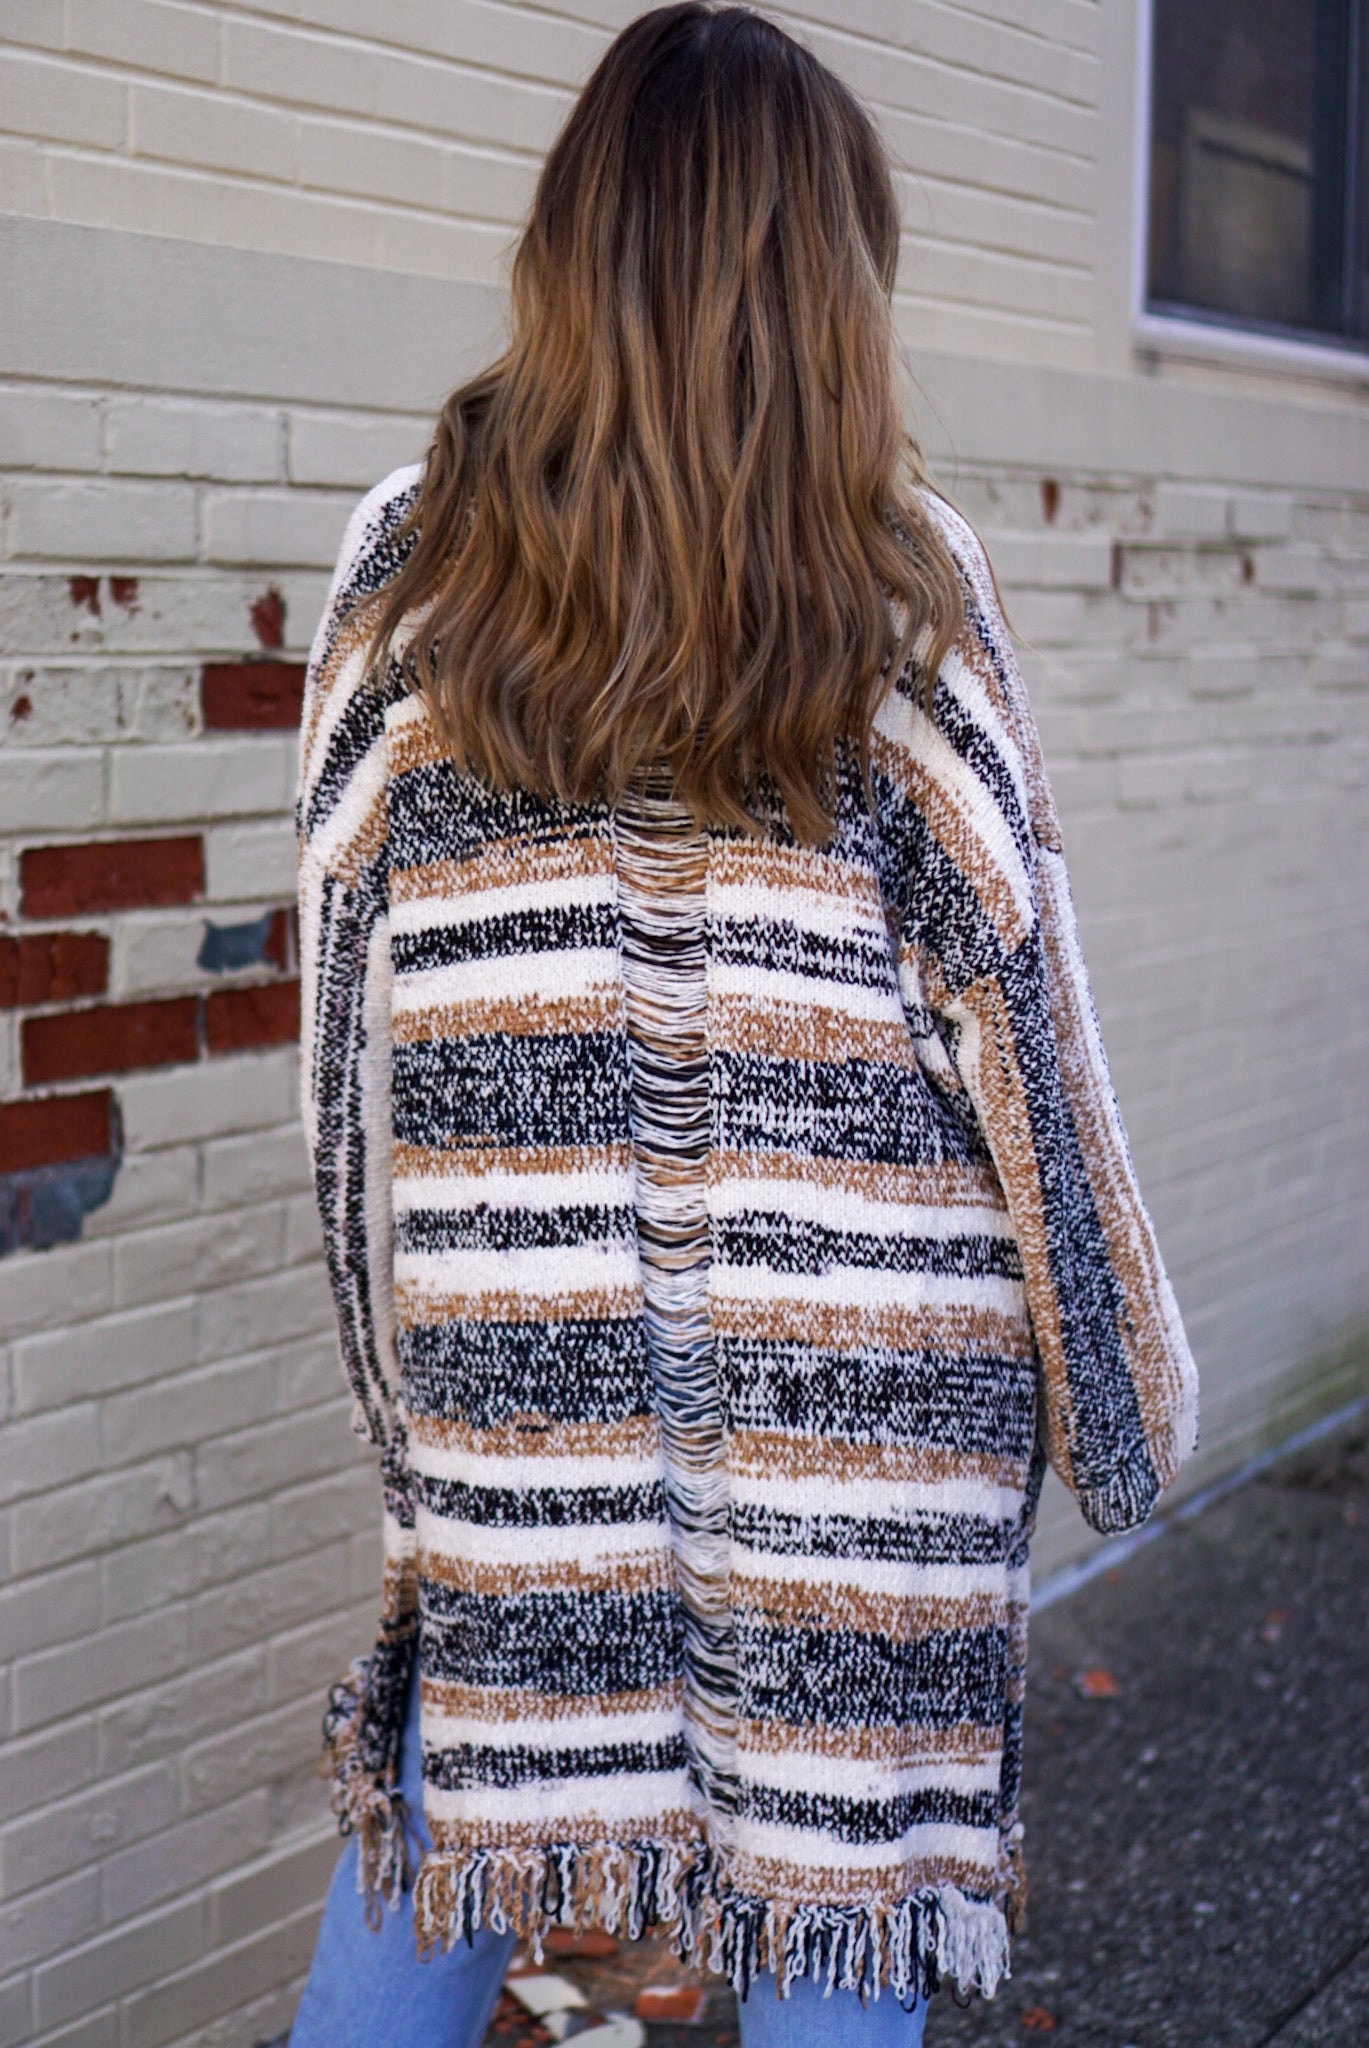 Your Dream Girl Winterspell Cardigan